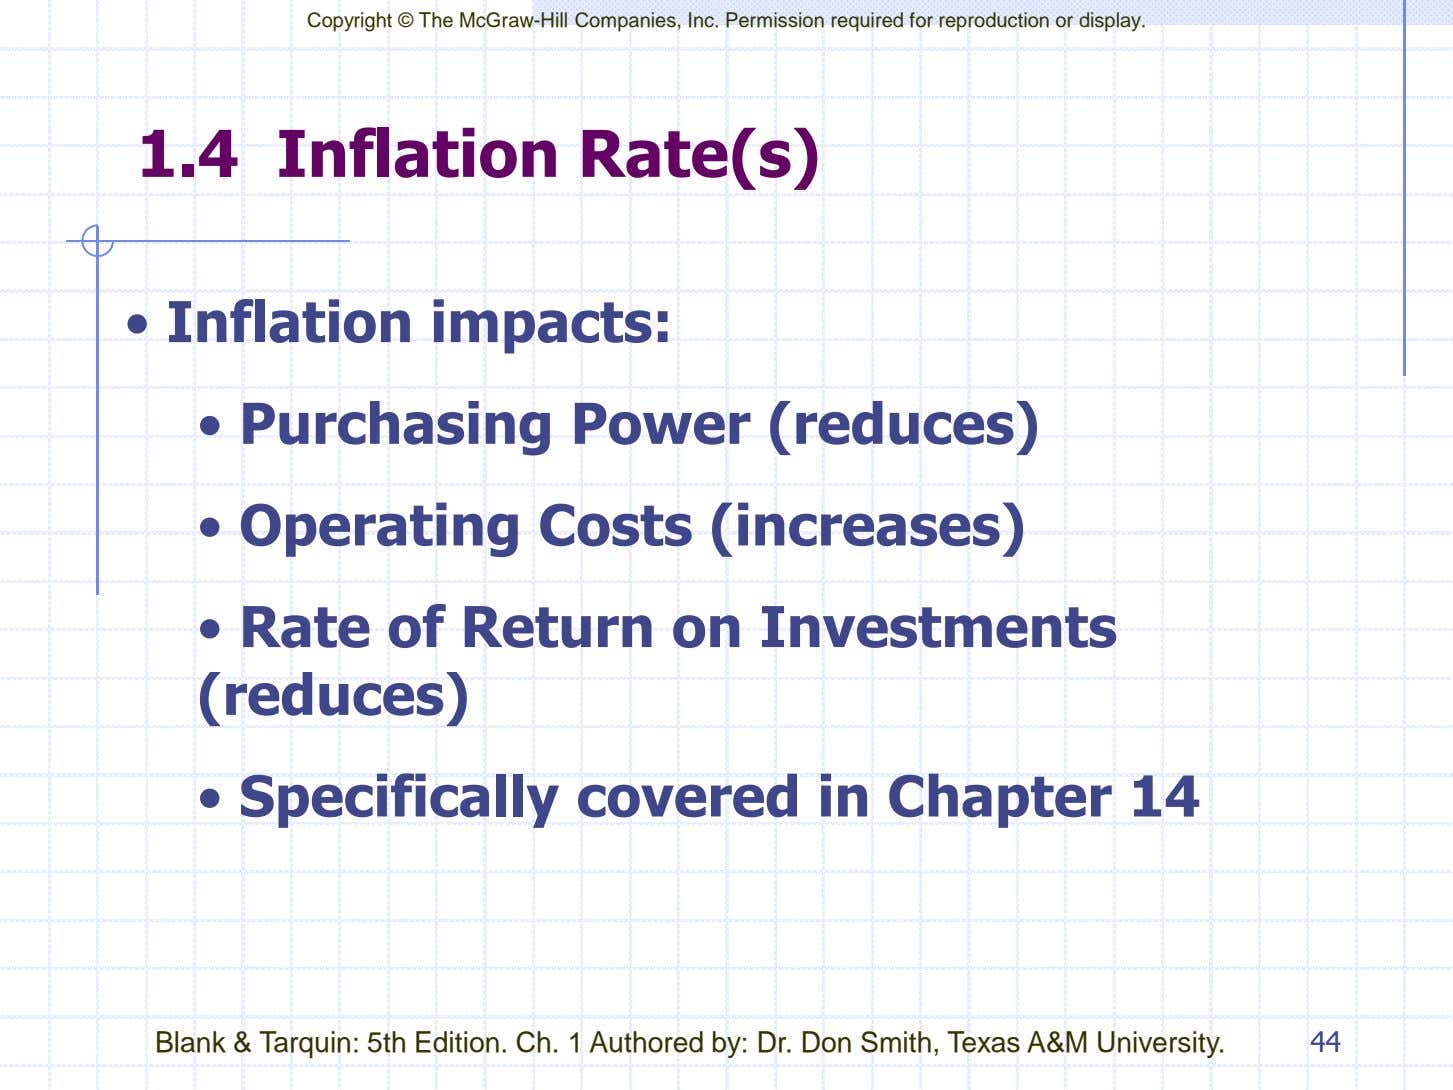 Copyright © The McGraw-Hill Companies, Inc. Permission required for reproduction or display. 1.4 Inflation Rate(s)